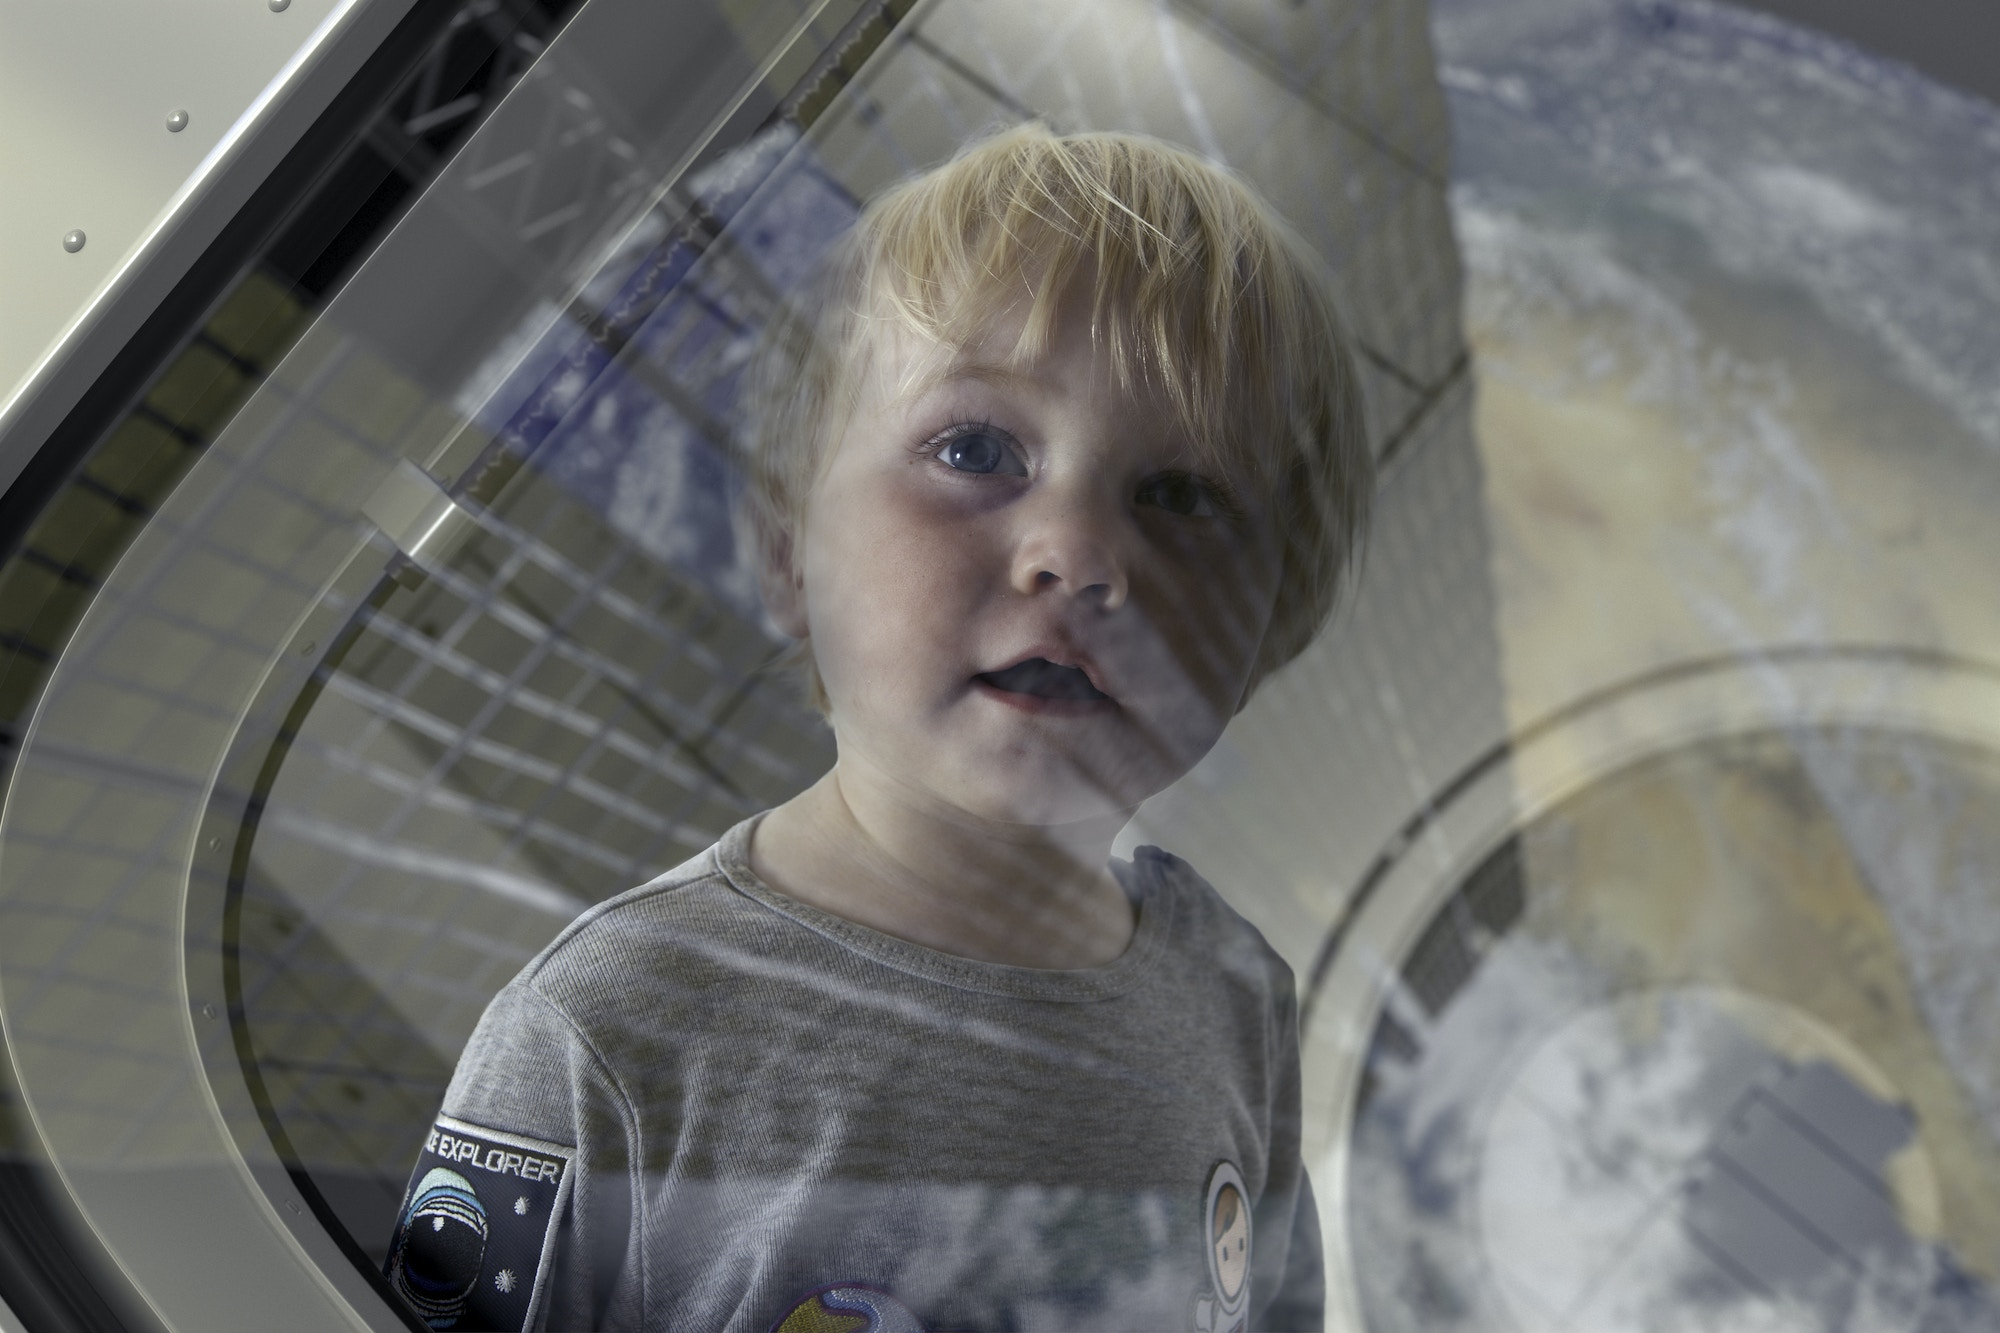 A young boy looks at the surface of a planet from the window of a spaceship